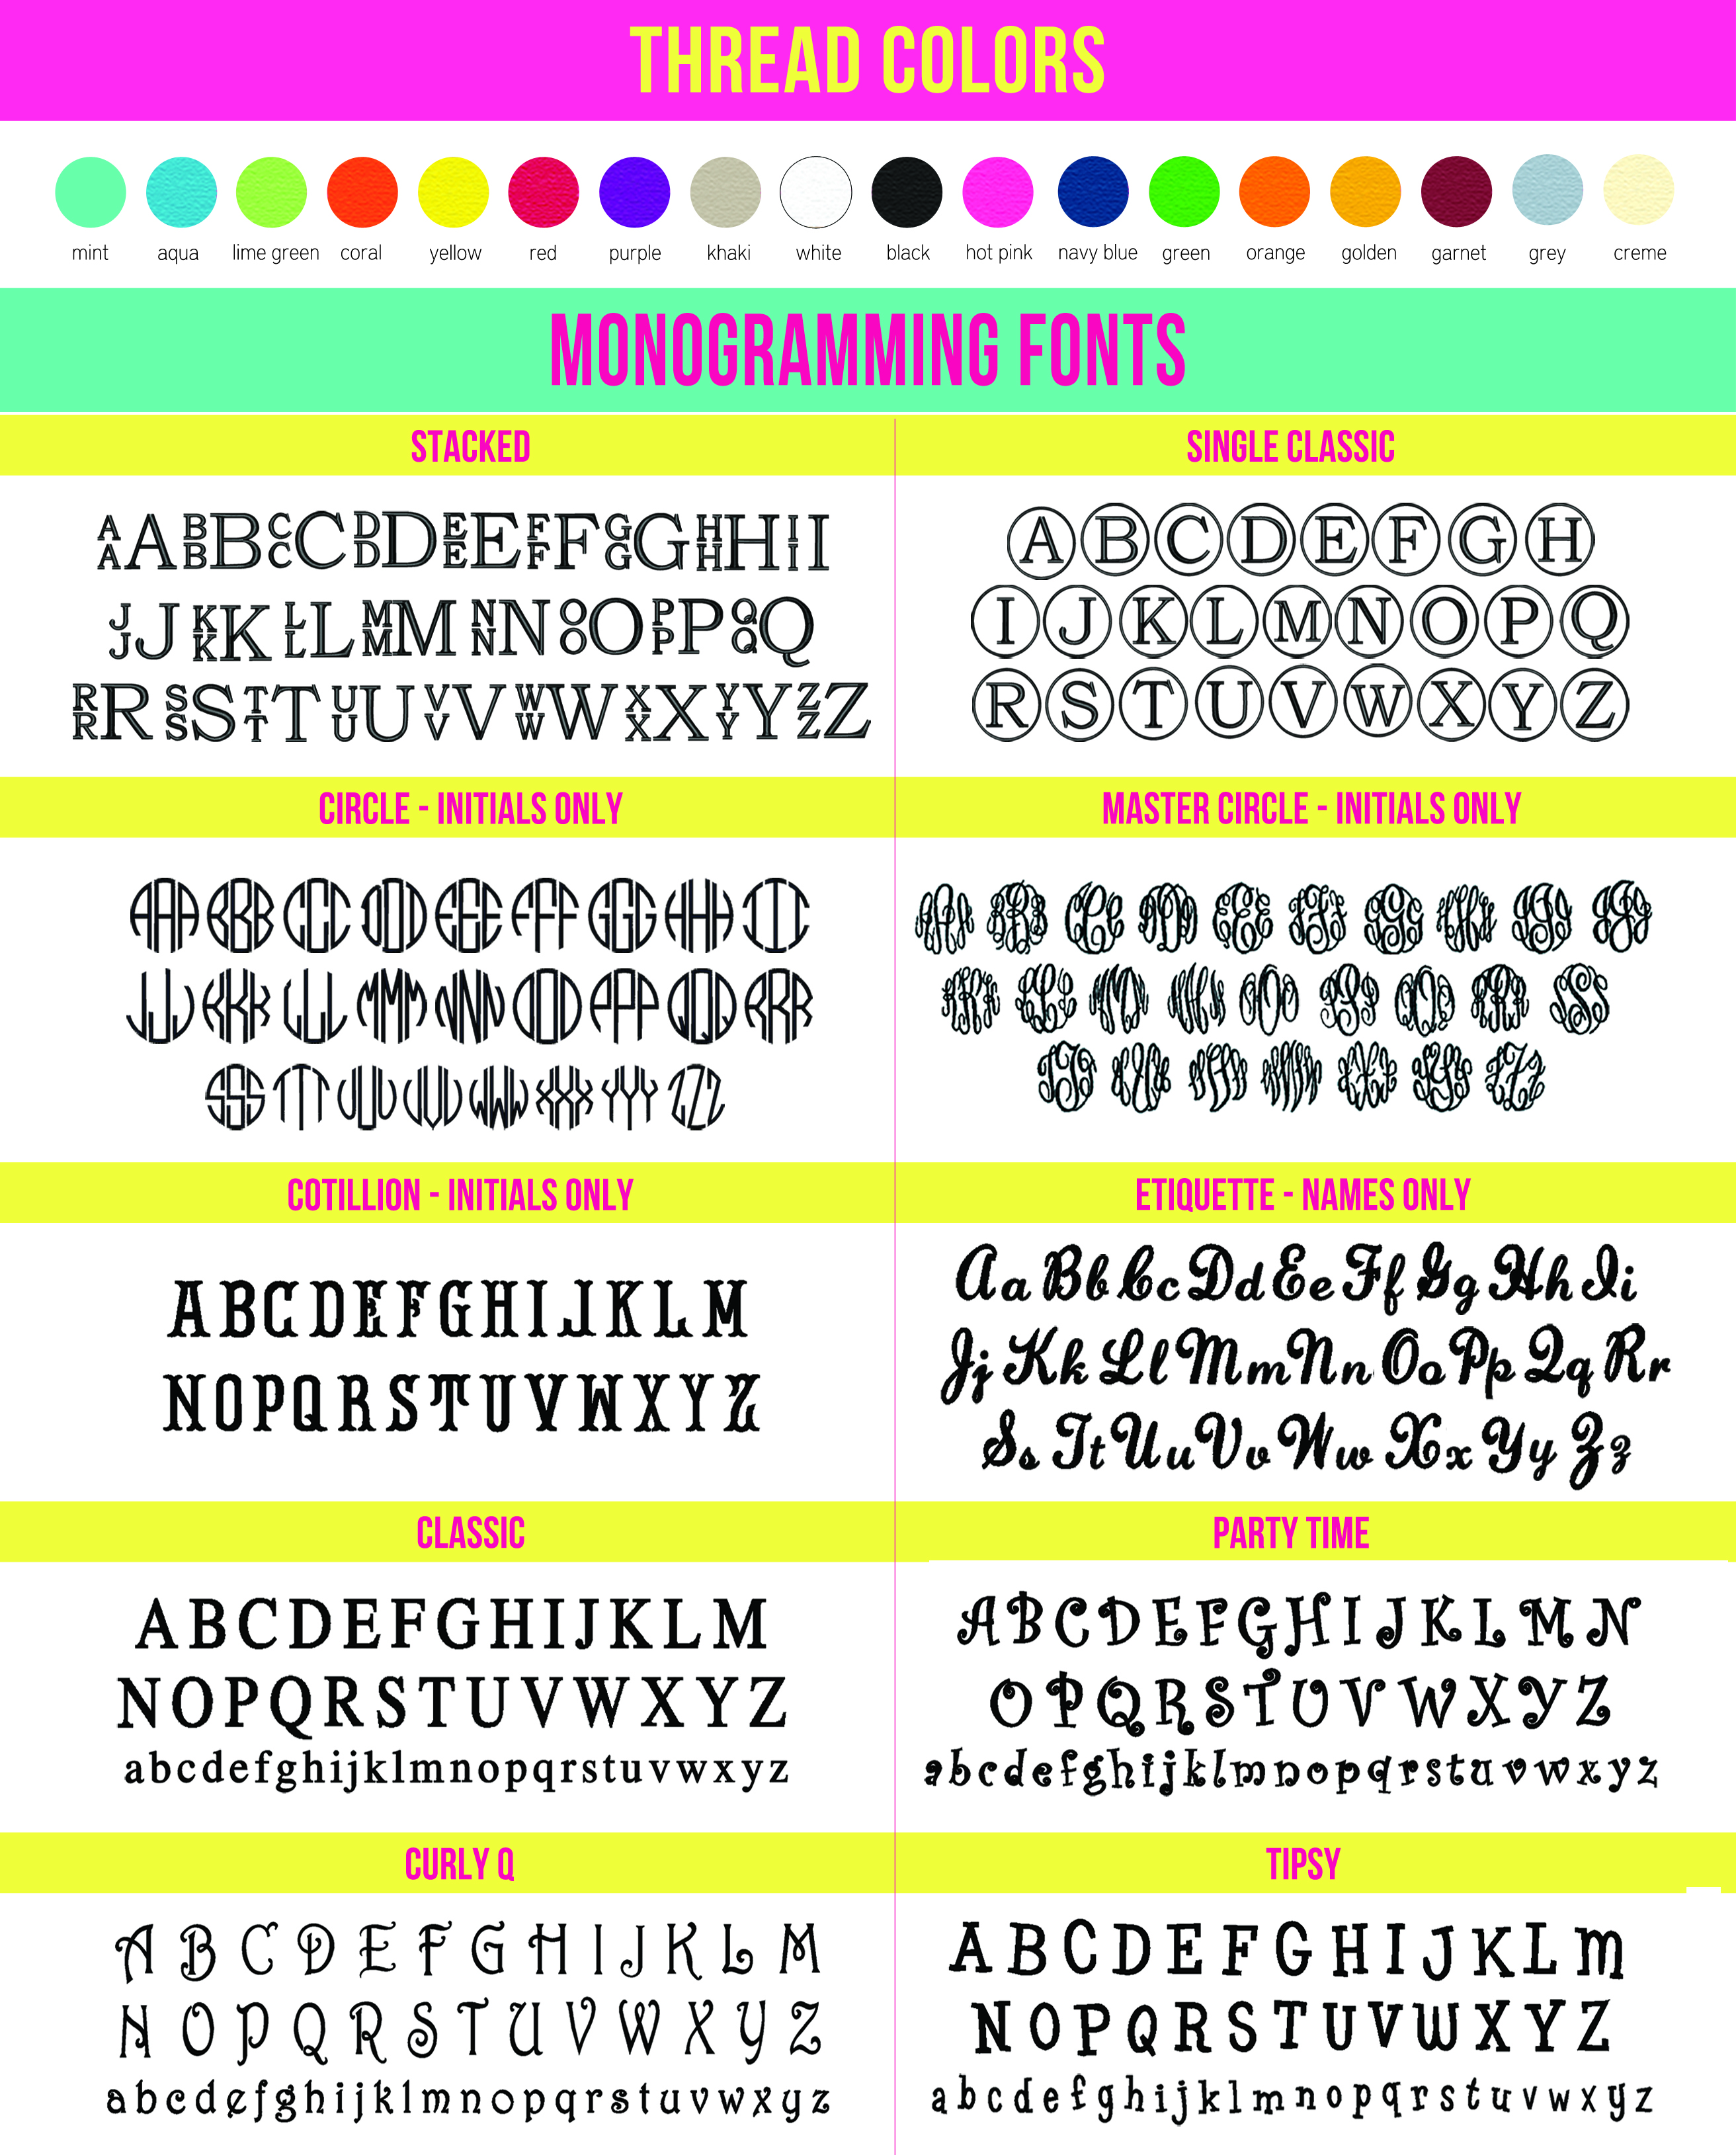 fonts-and-threads.jpg